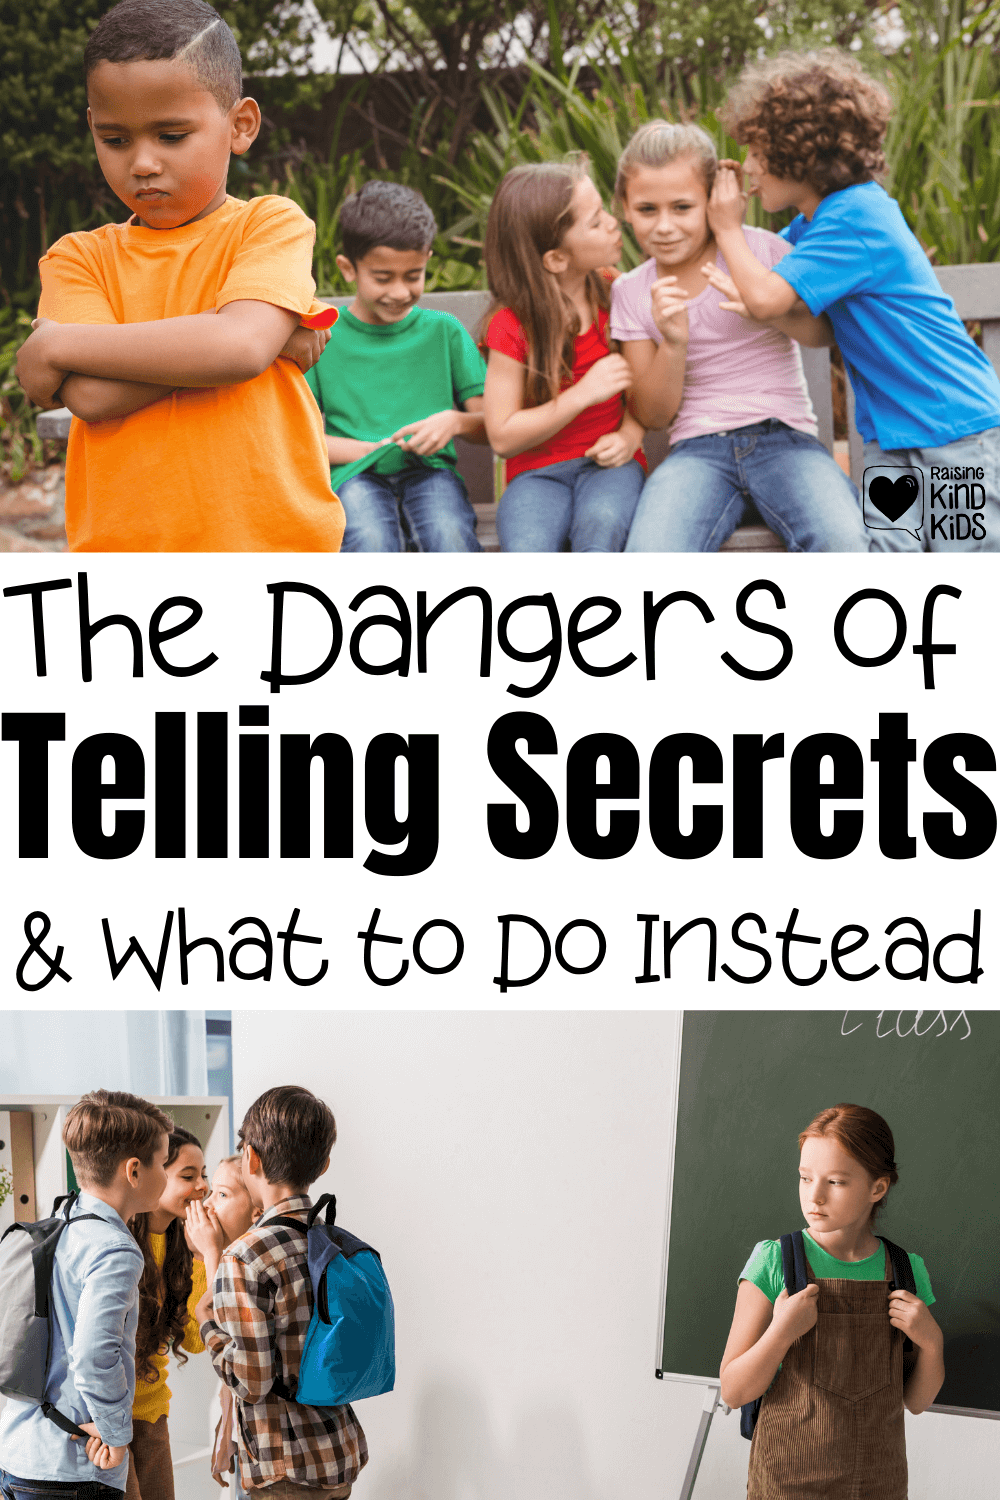 The dangers of telling secrets and the unkindness of telling secrets makes secrets a no go for us. Here's what to teach your kids instead so they can still share private information in a safe and thoughtful way.